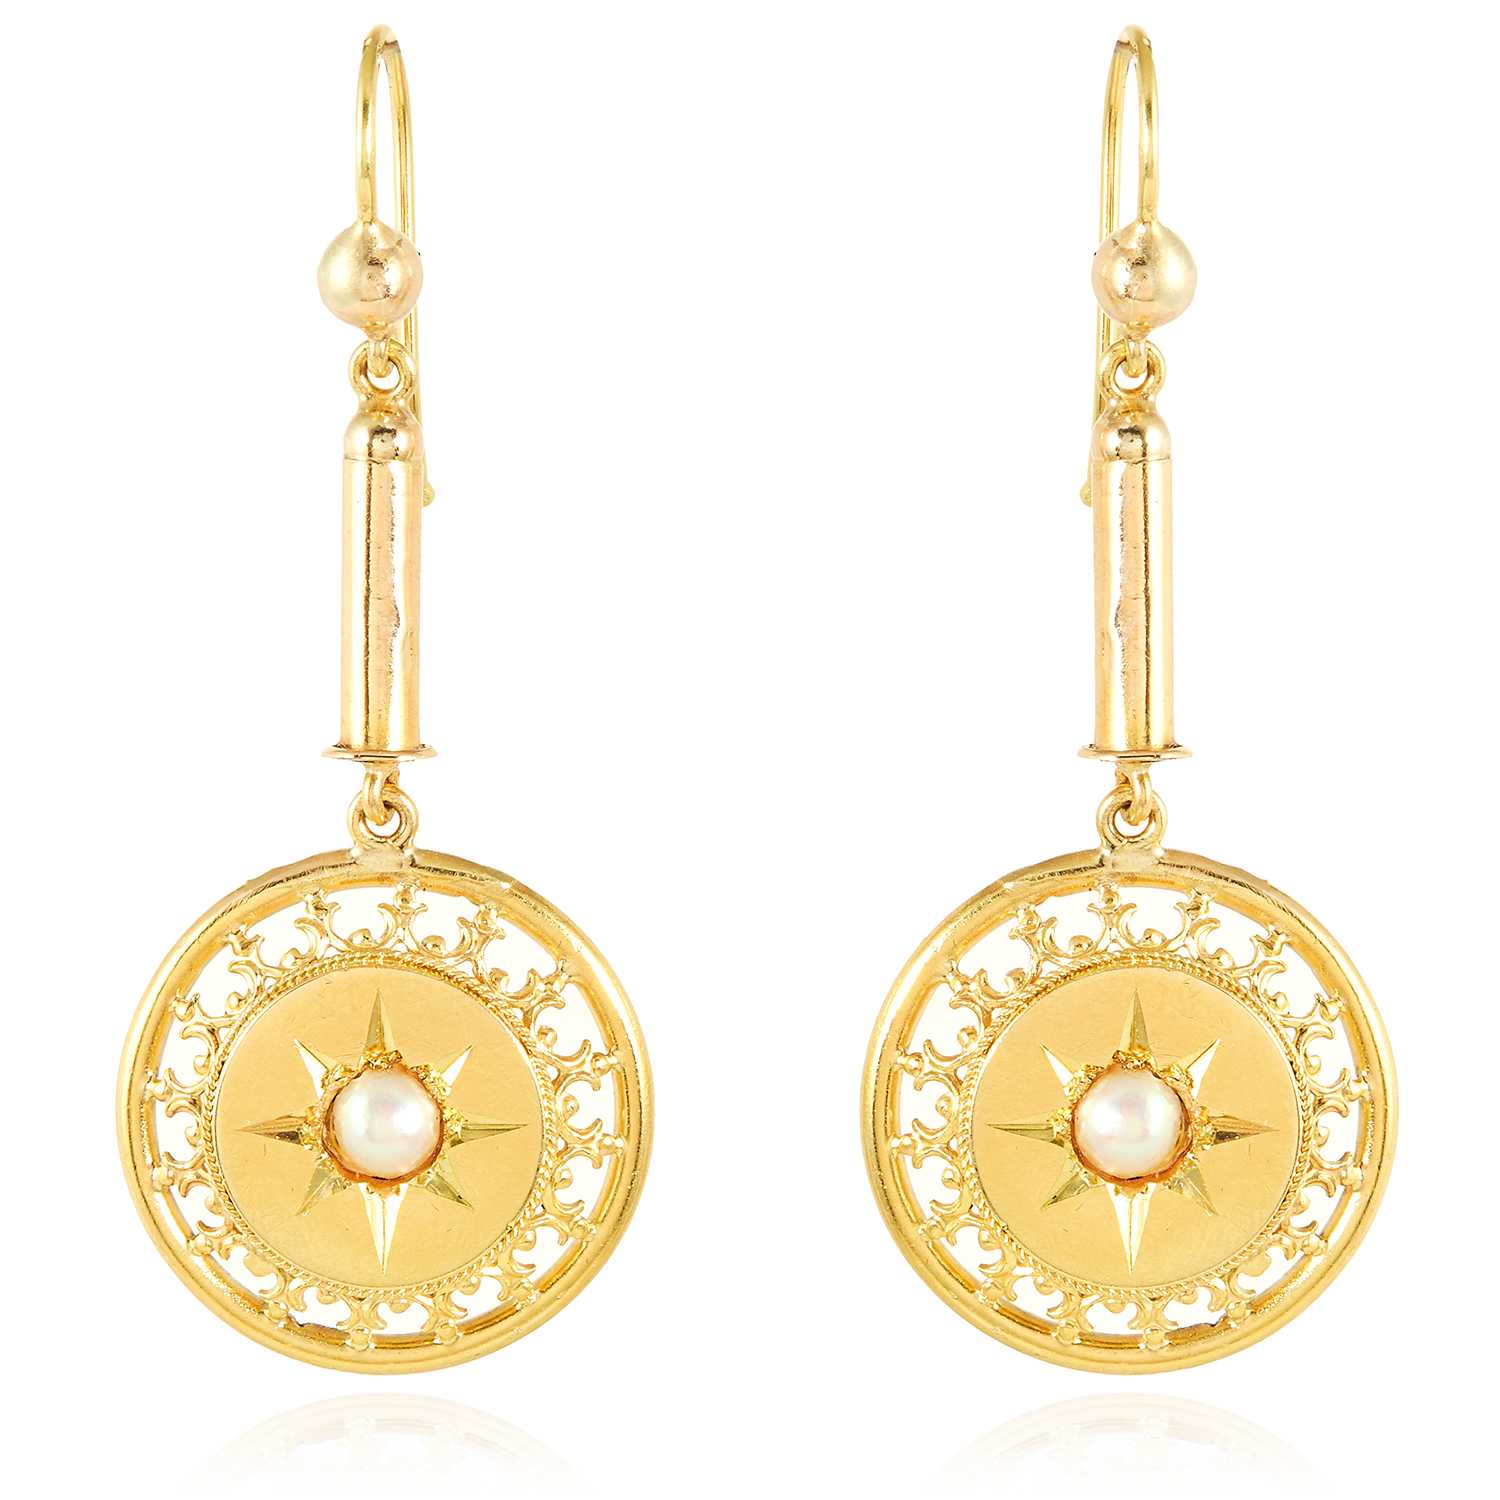 A PAIR OF ANTIQUE PEARL DROP EARRINGS, 19TH CENTURY in high carat yellow gold, each suspending a